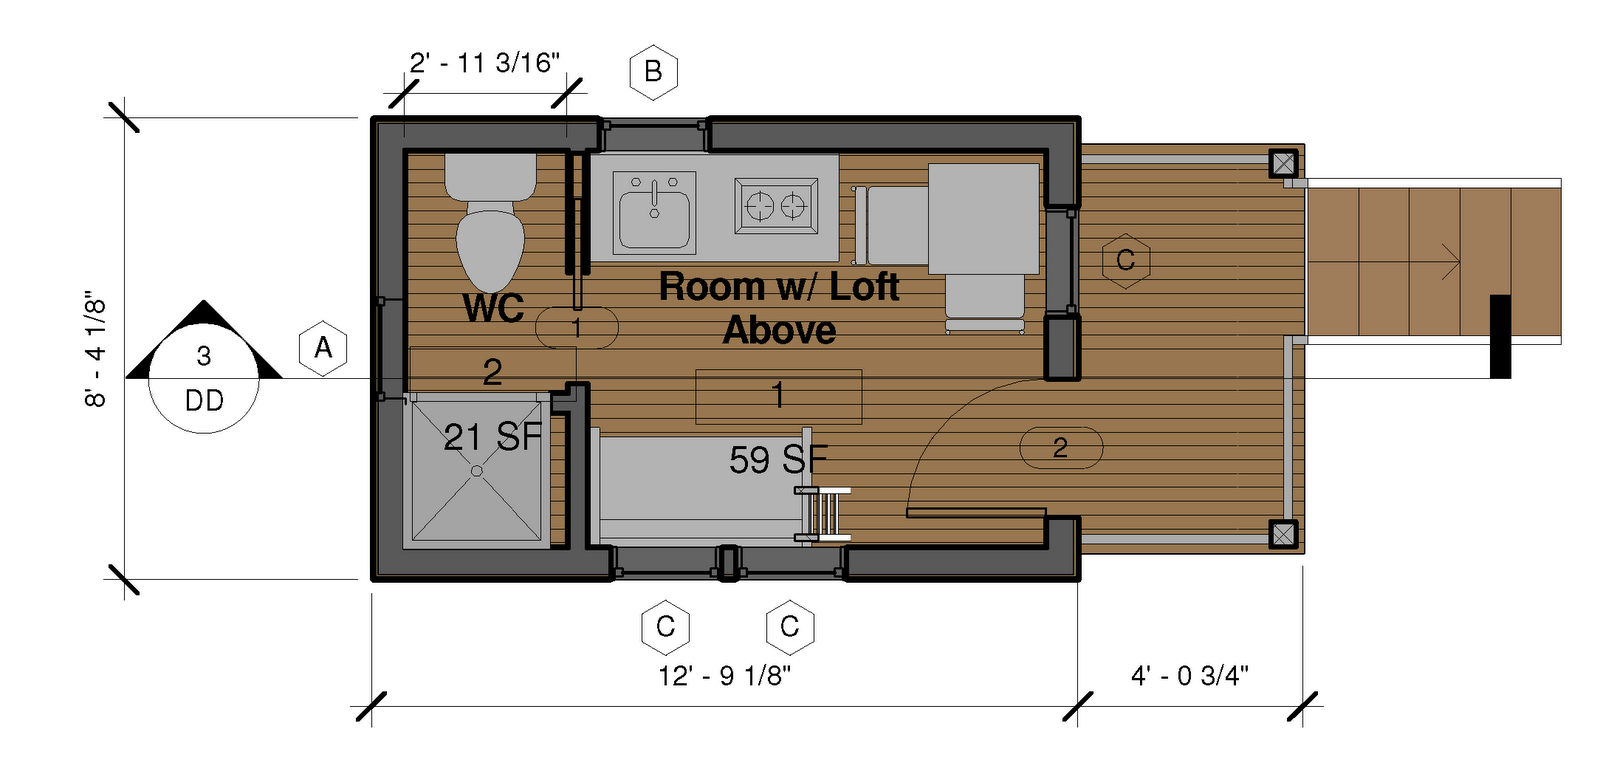 Tiny house plans house plans ideas 2016 2017 Tiny little house plans